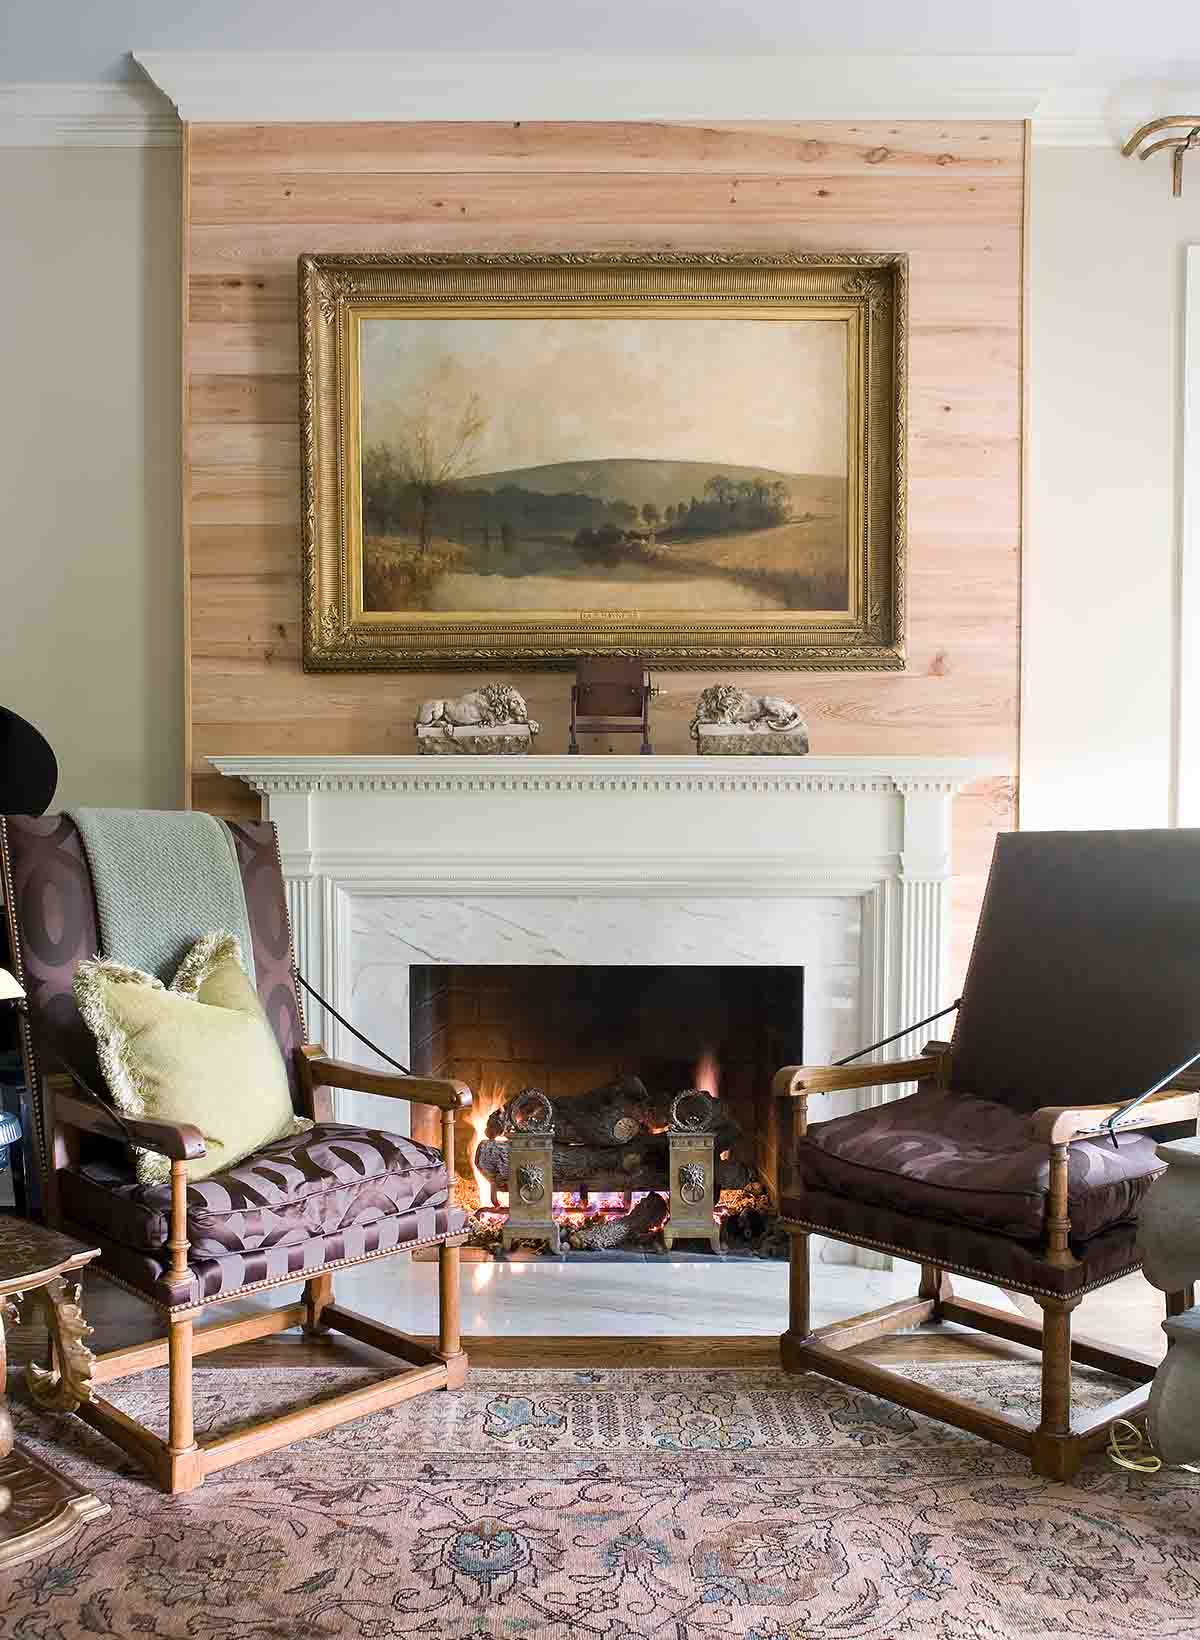 Fireplace - Woodlawn Drive Home - R.Higgins Interiors Design